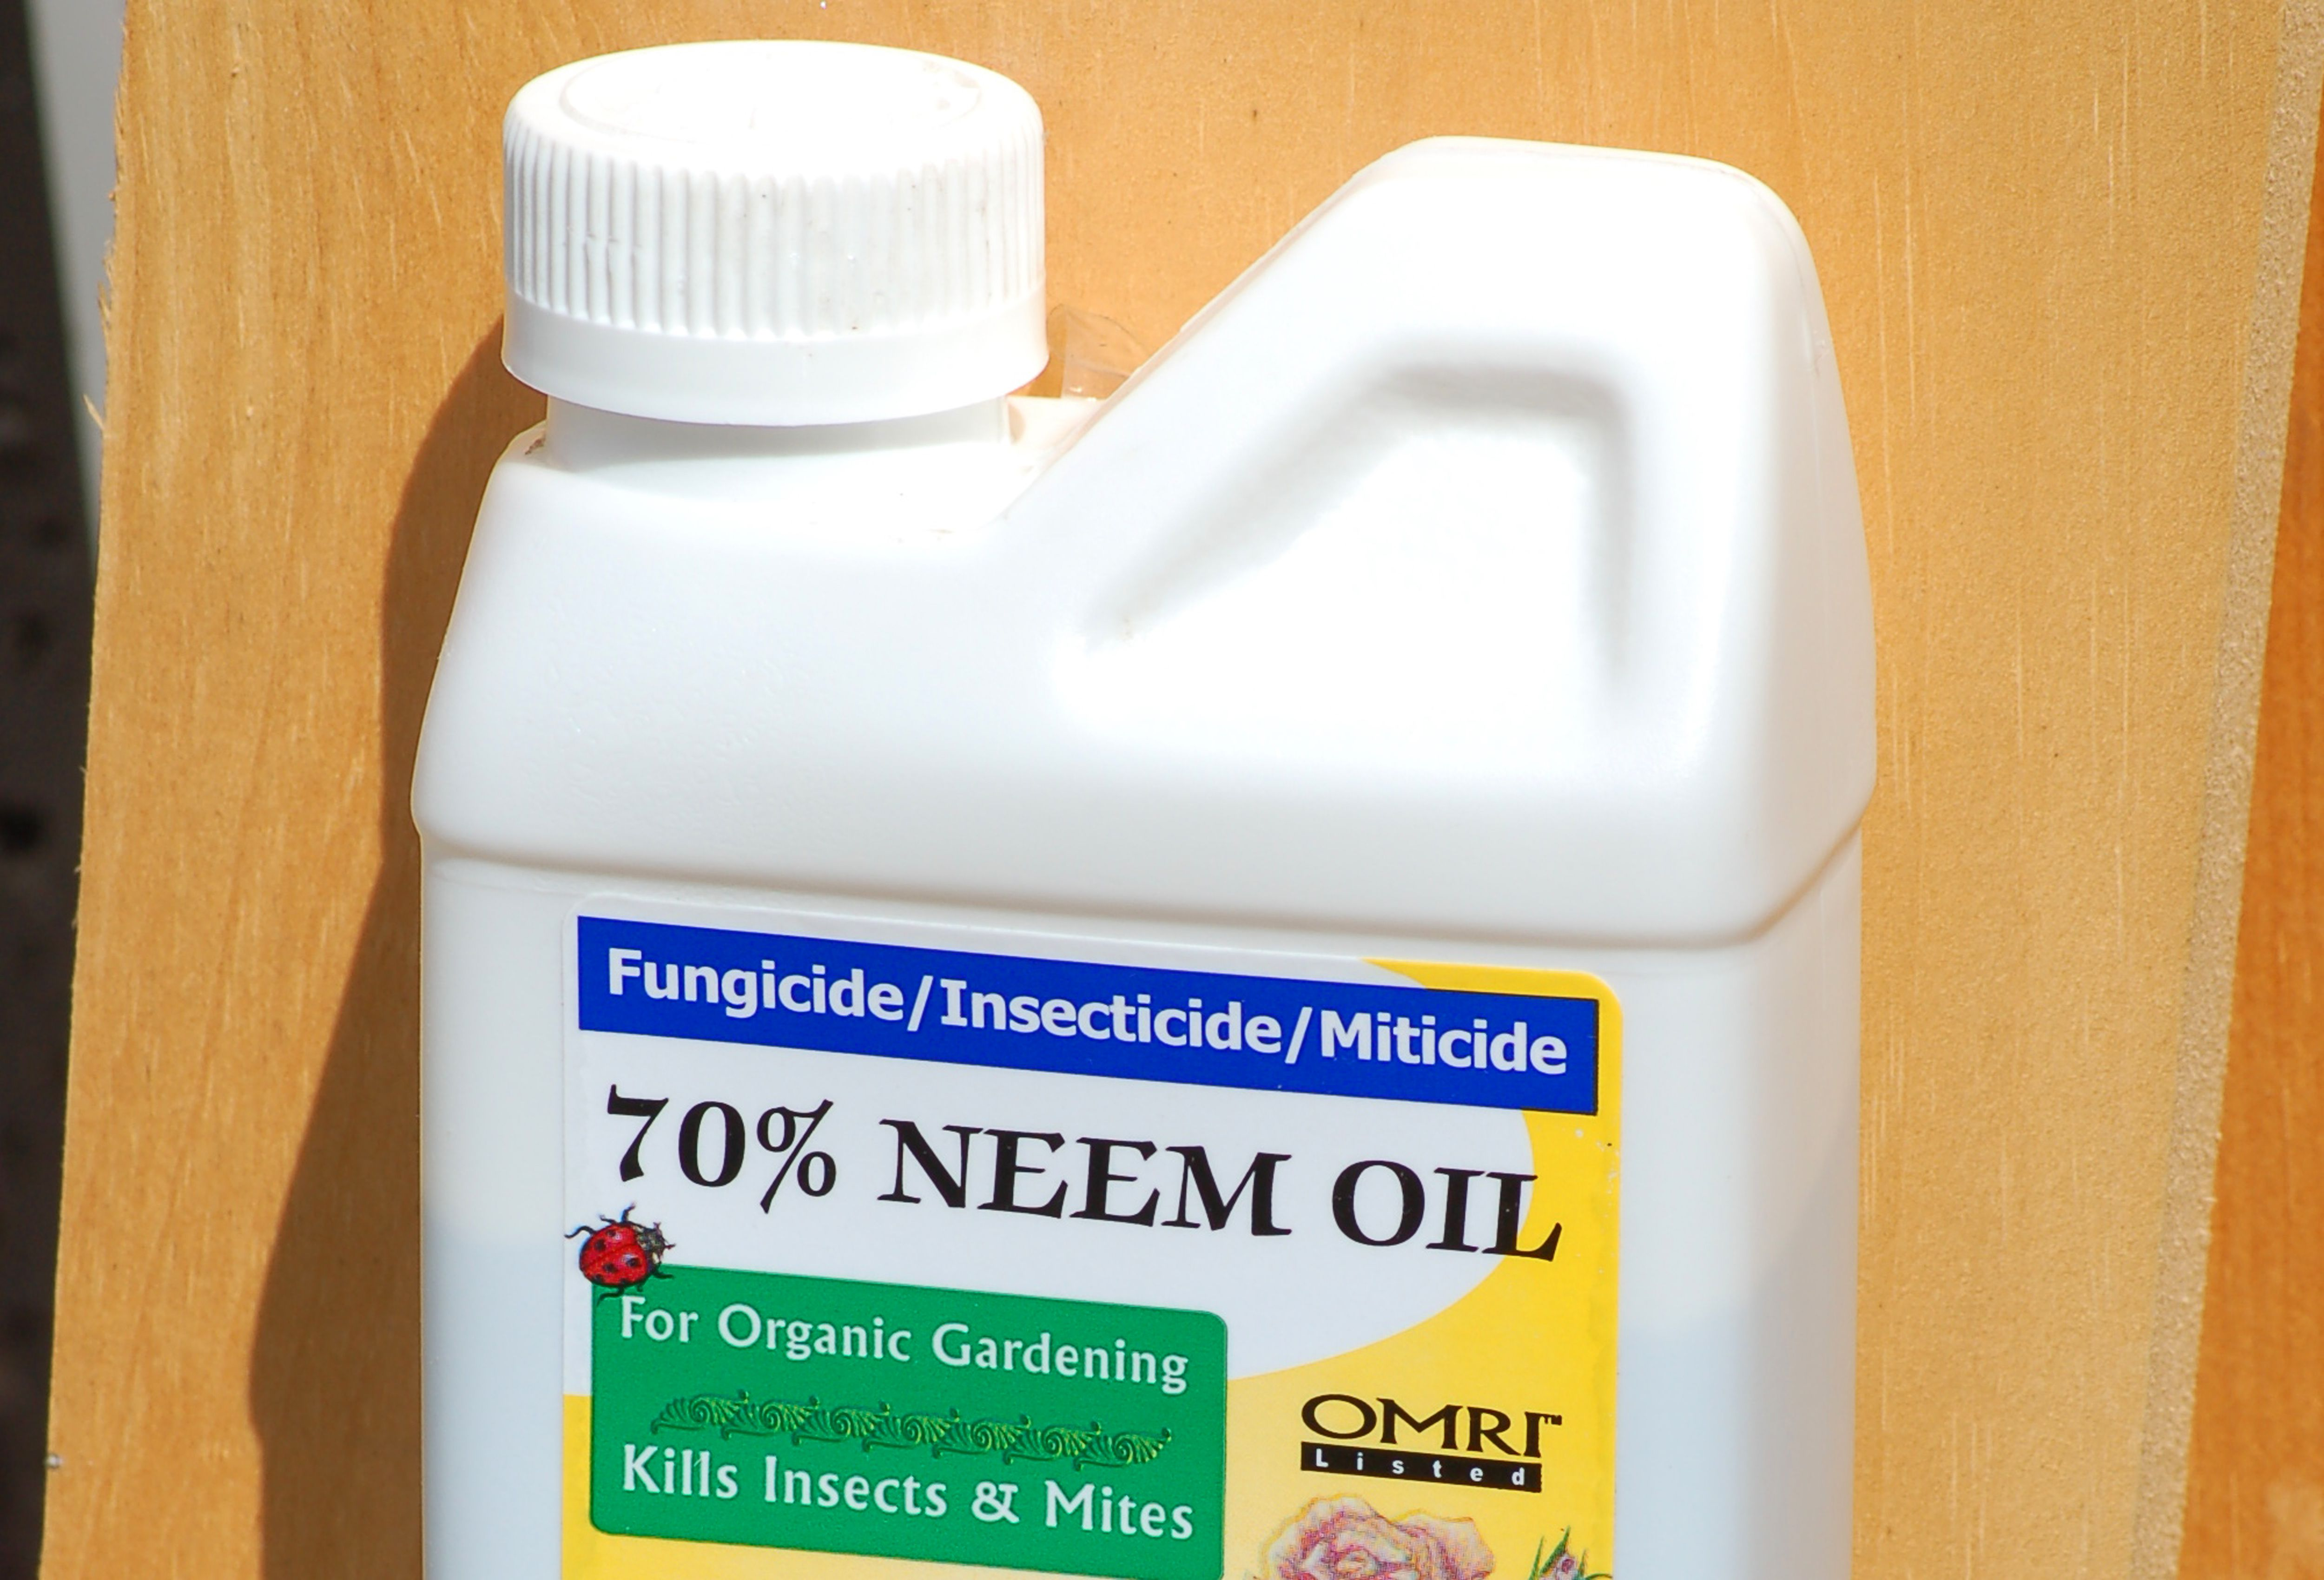 Using Neem Oil as an Organic Insecticide